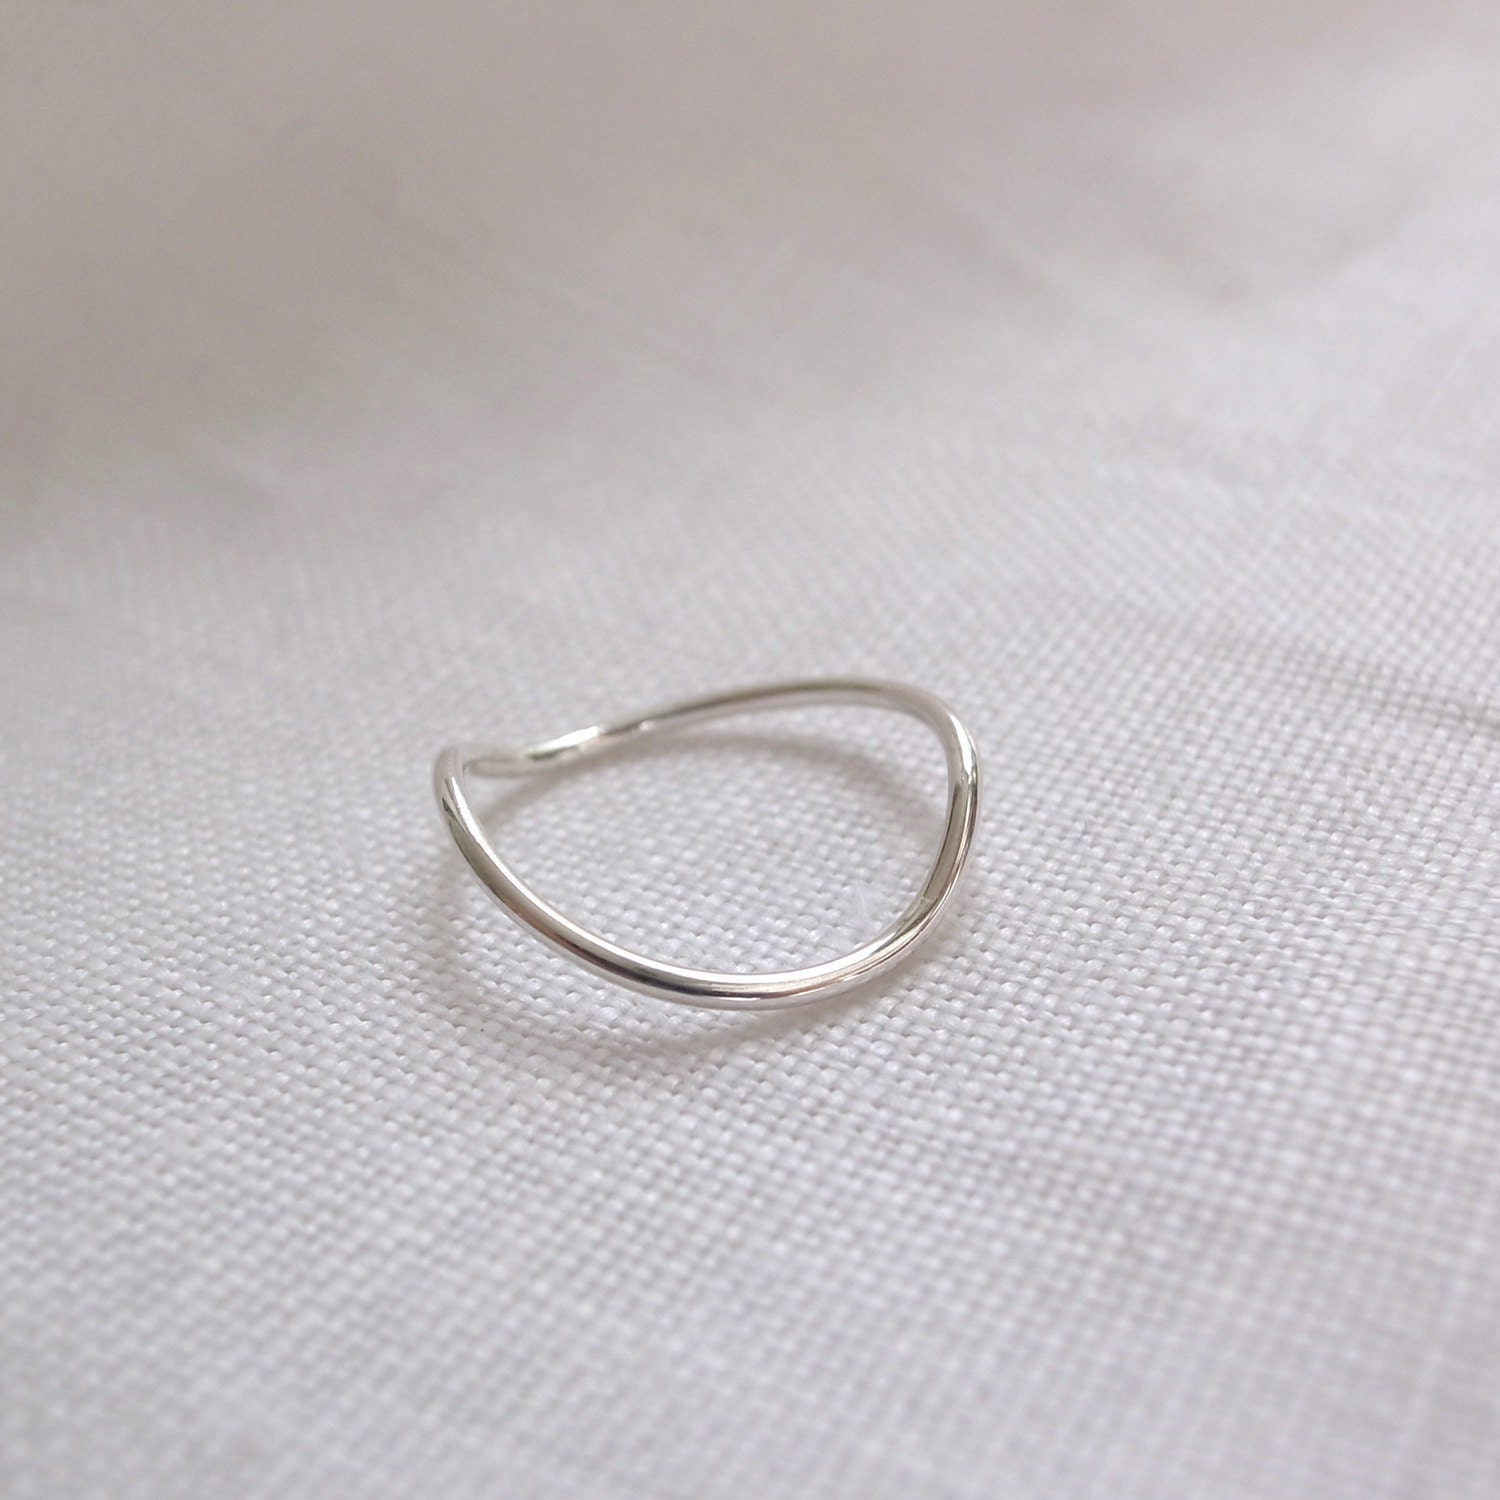 wave ring sterling silver by maryscabinet on etsy